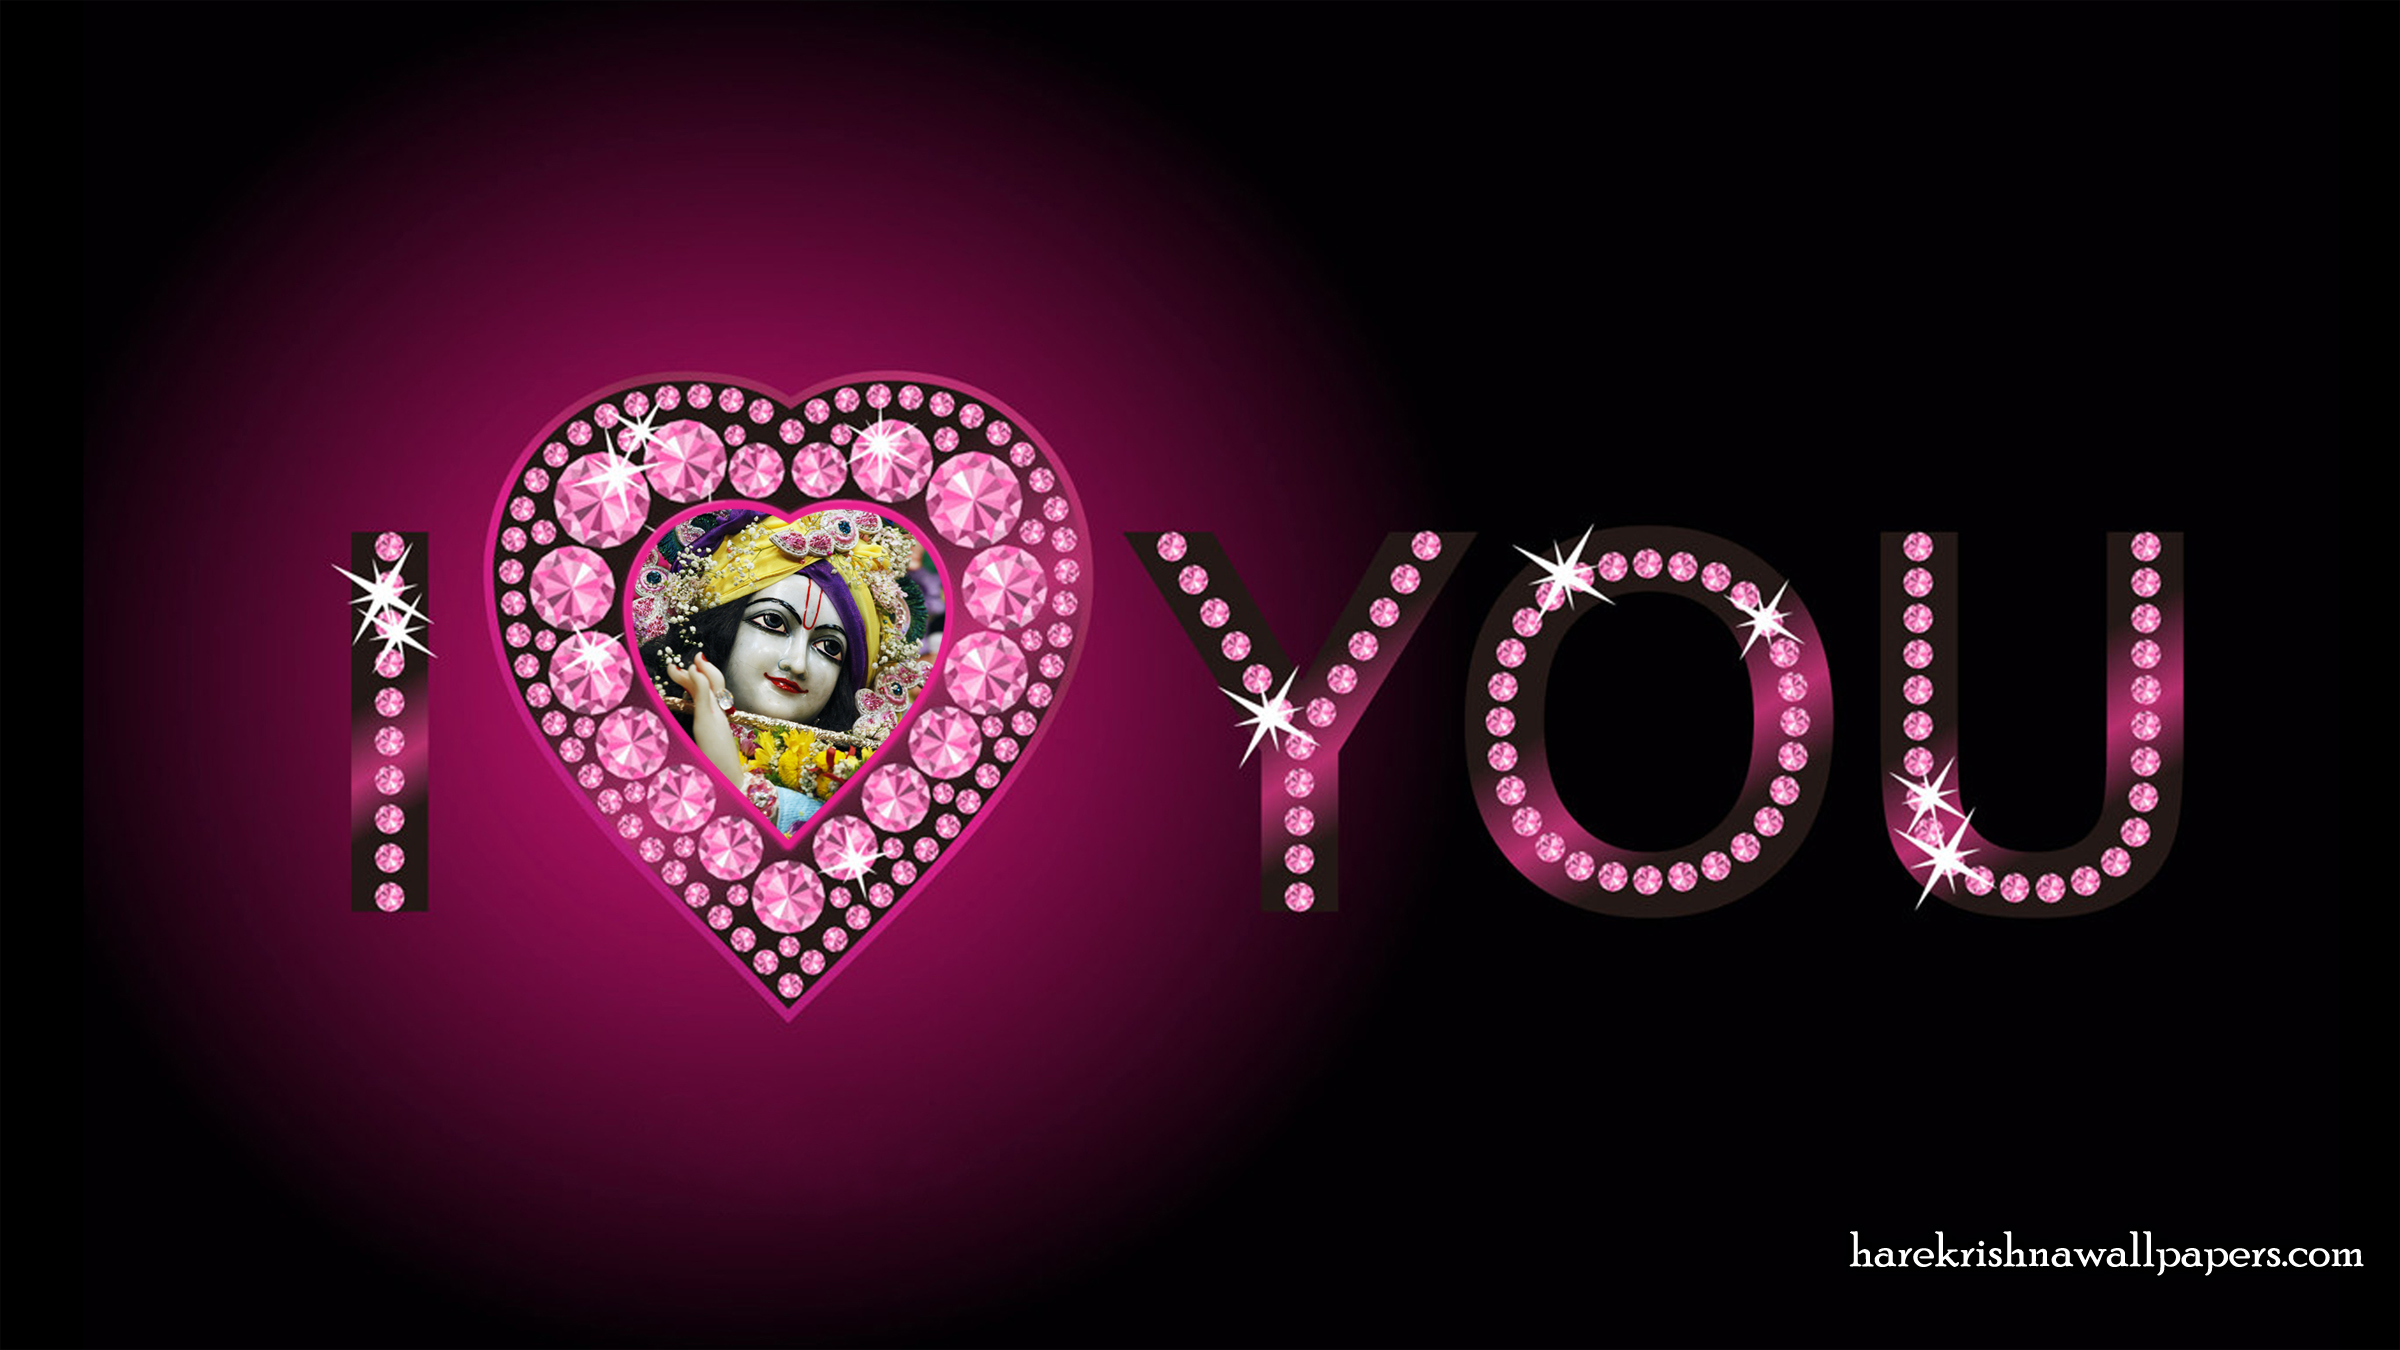 I Love You Gopinath Wallpaper (002) Size 2400x1350 Download